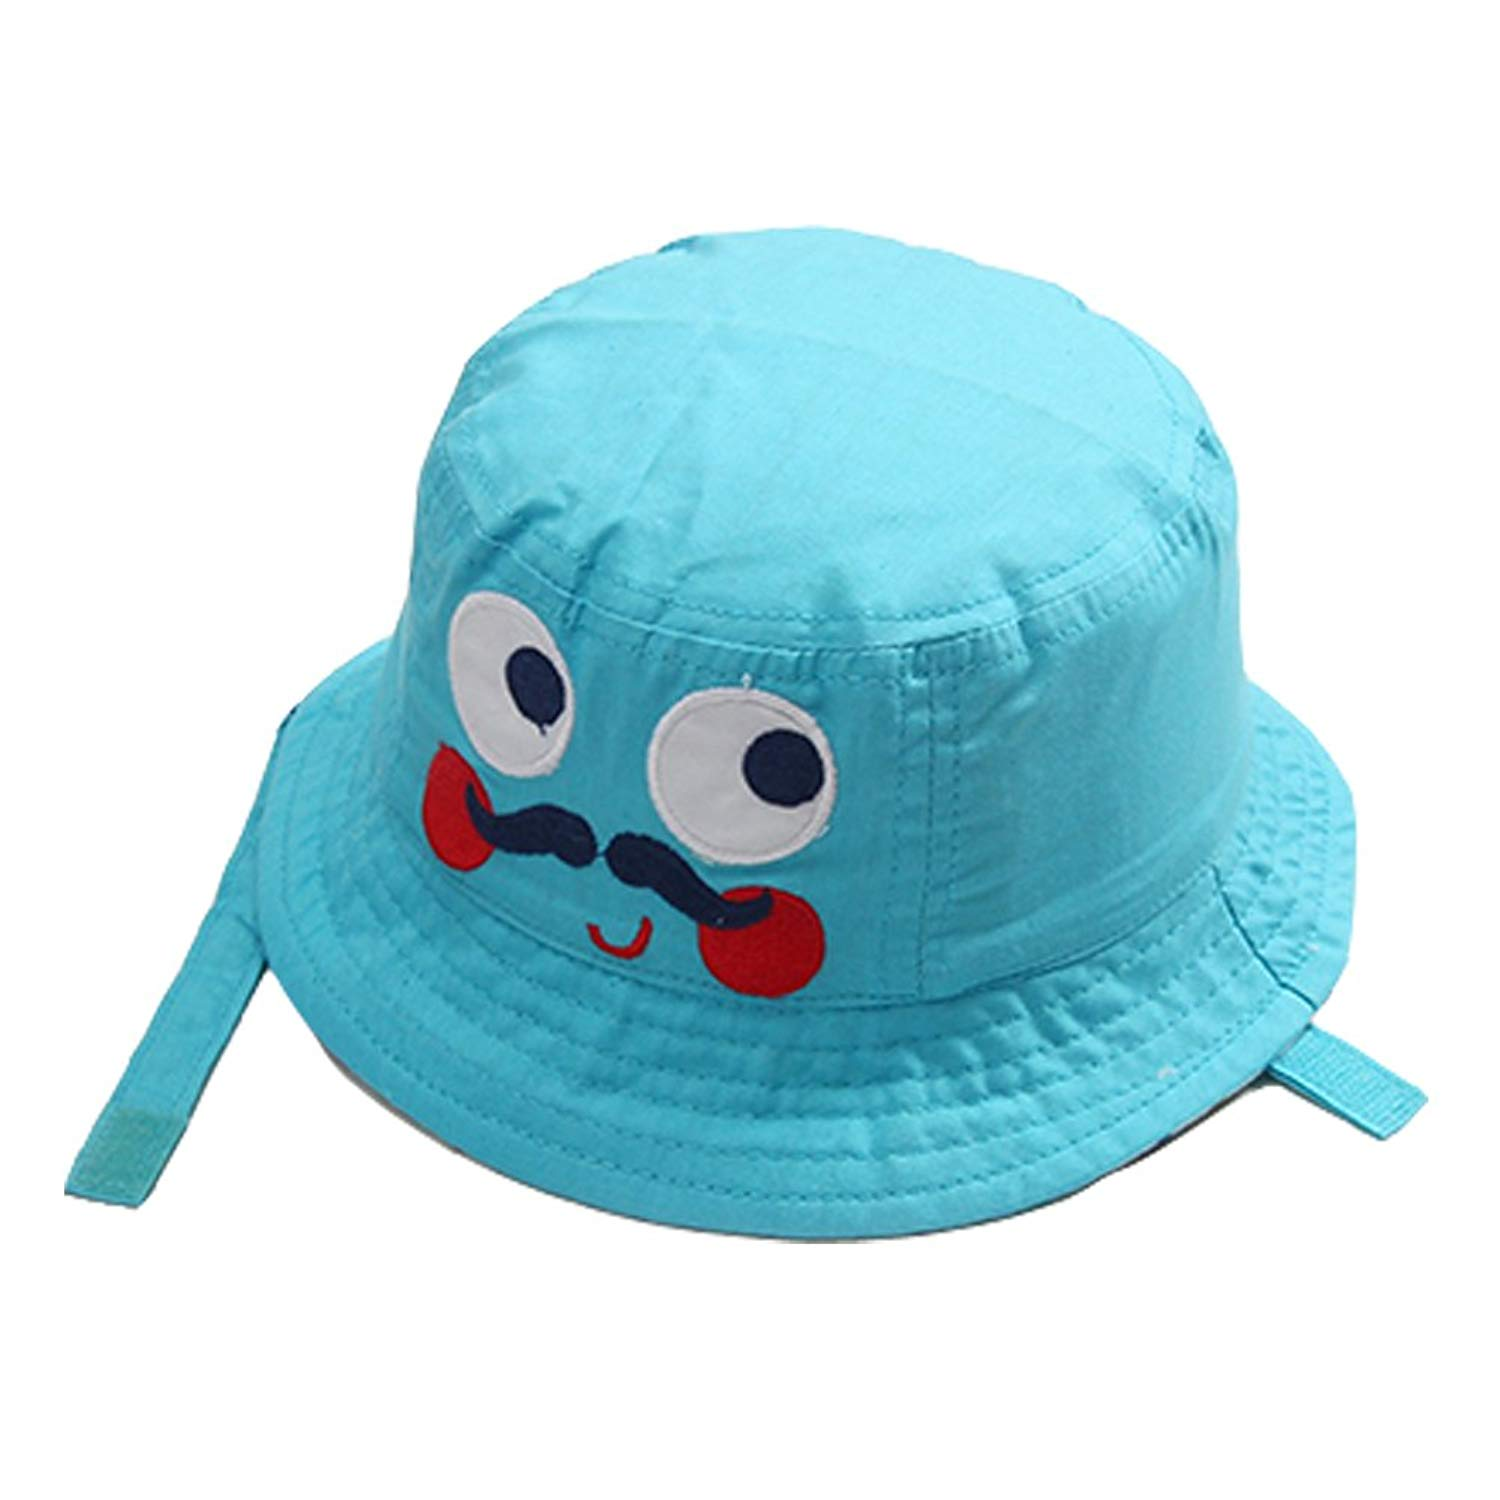 2ed0a3cce47 Get Quotations · Toddler Bucket Sun Hat Boys - Cute Cartoon Infant Baby  Kids UV Sun Animal Protection Hat